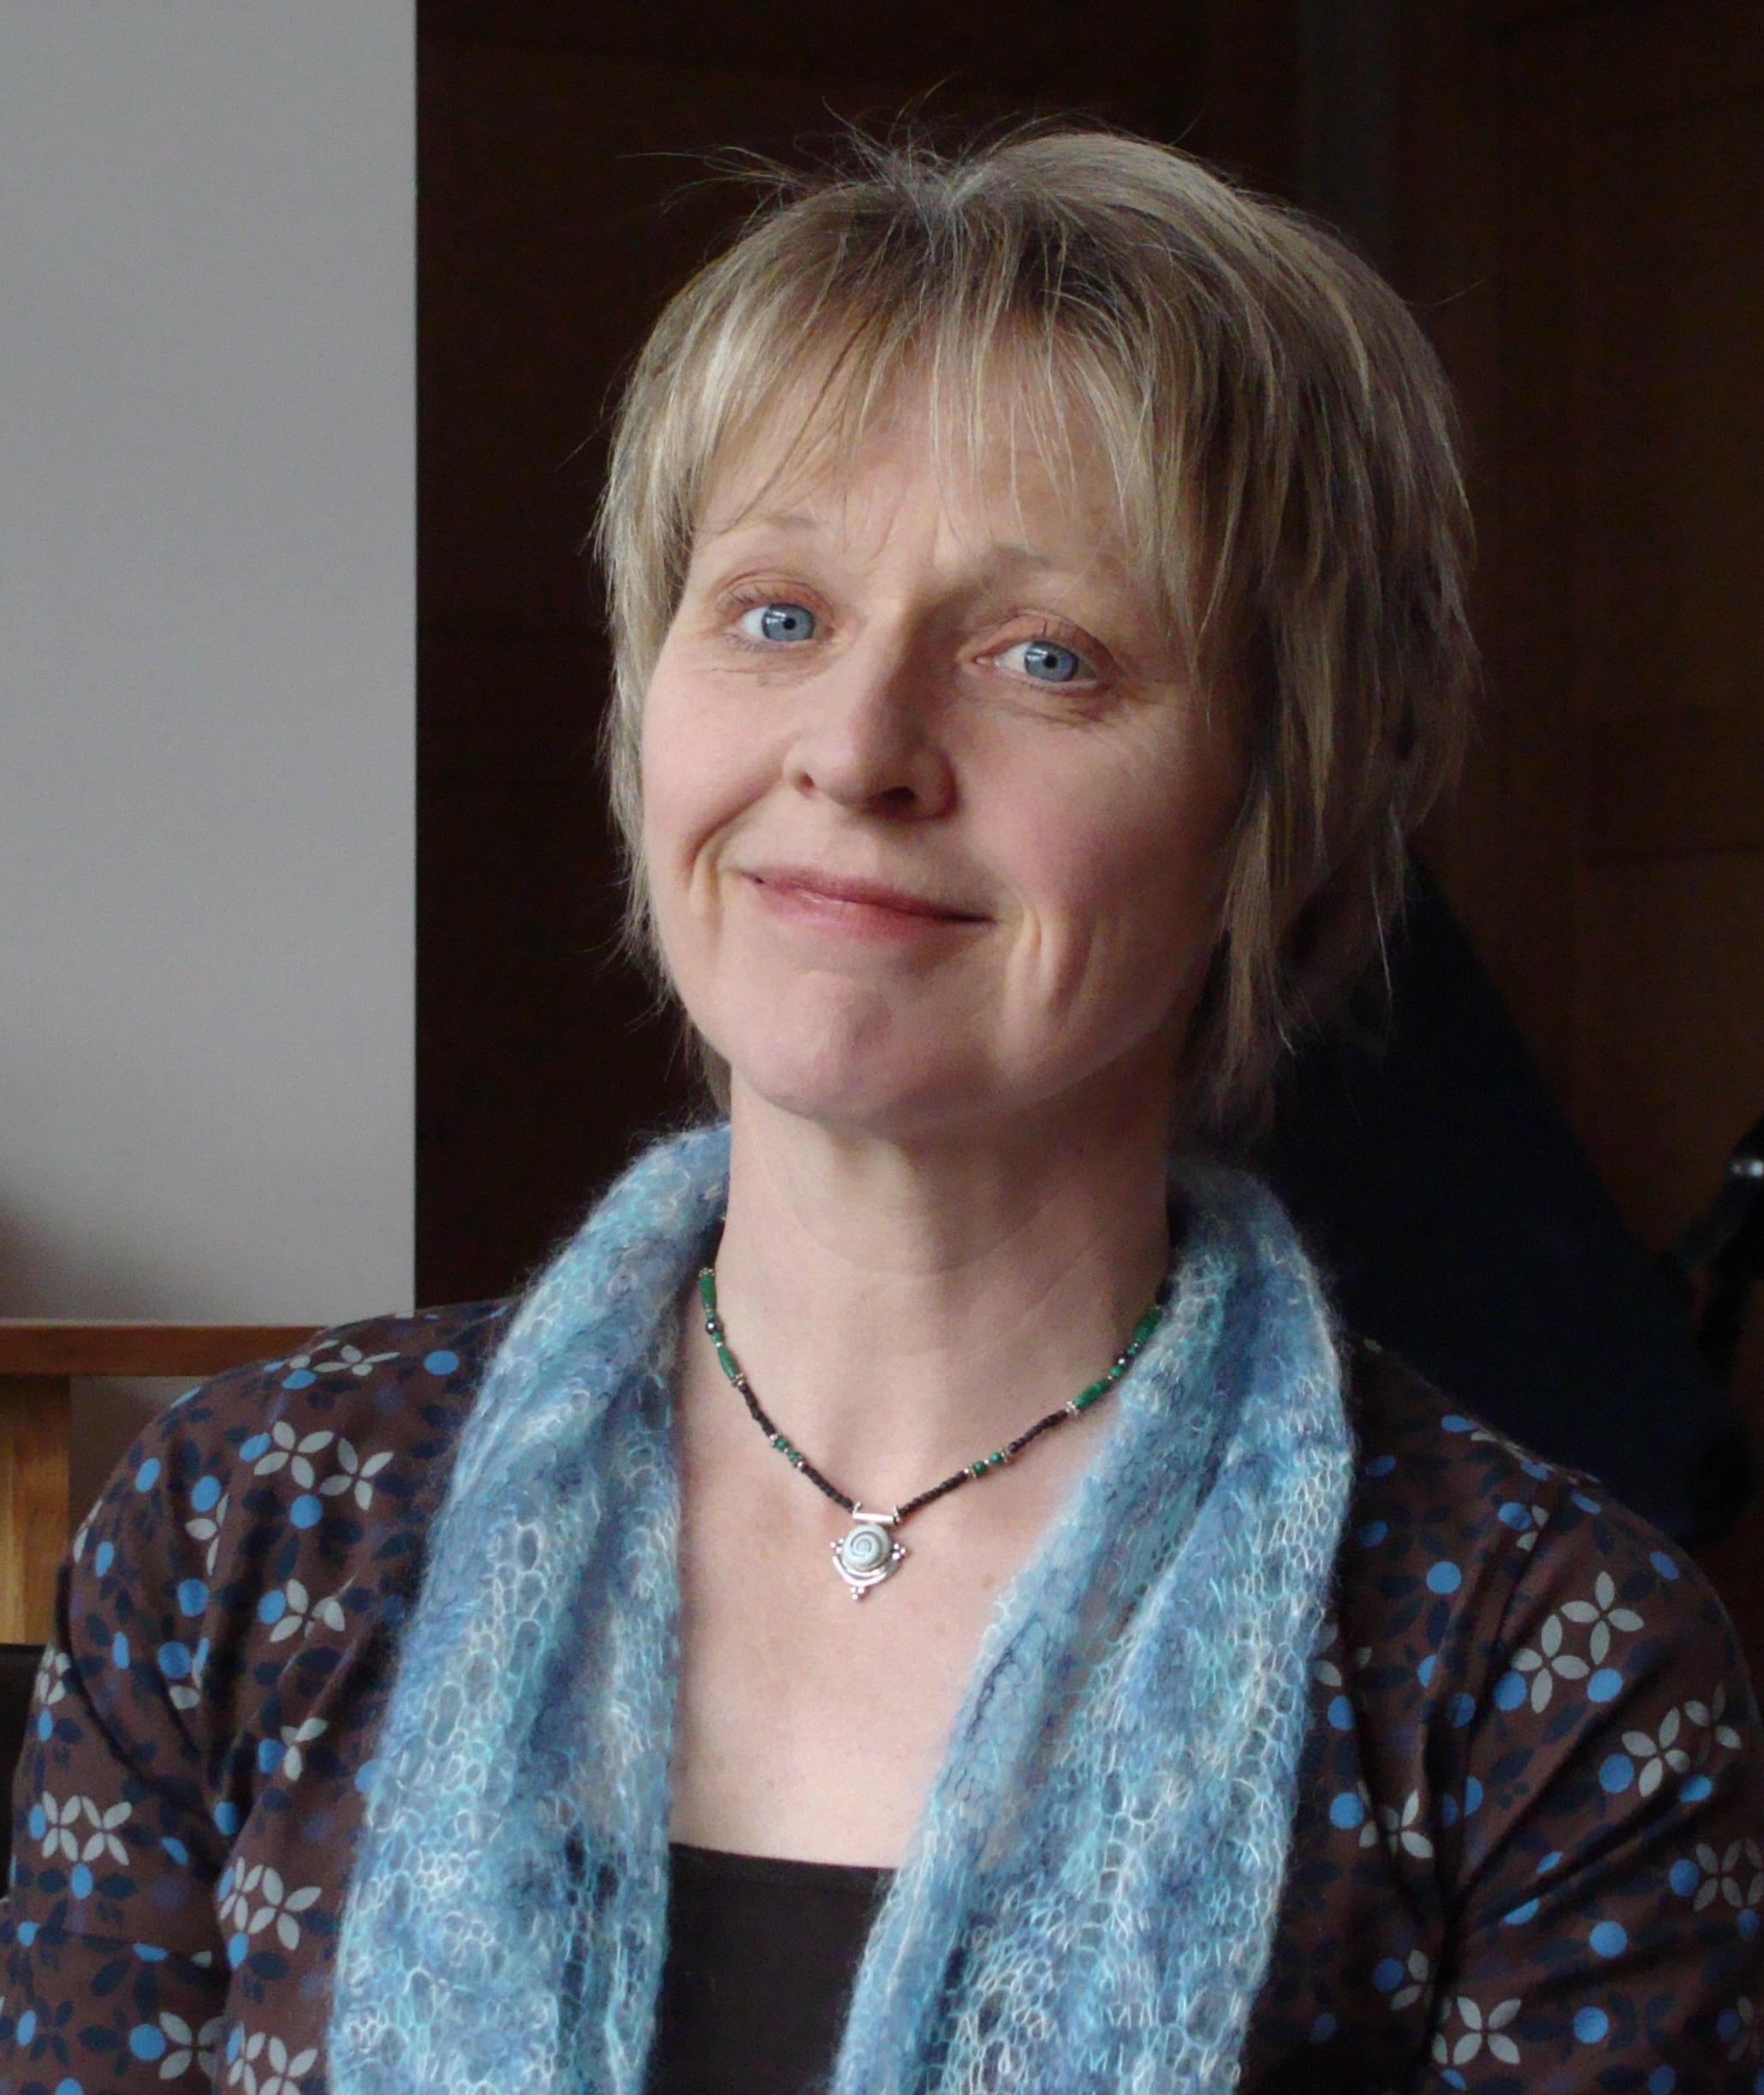 Kathy Page on the short story, an interview with Trevor Corkum